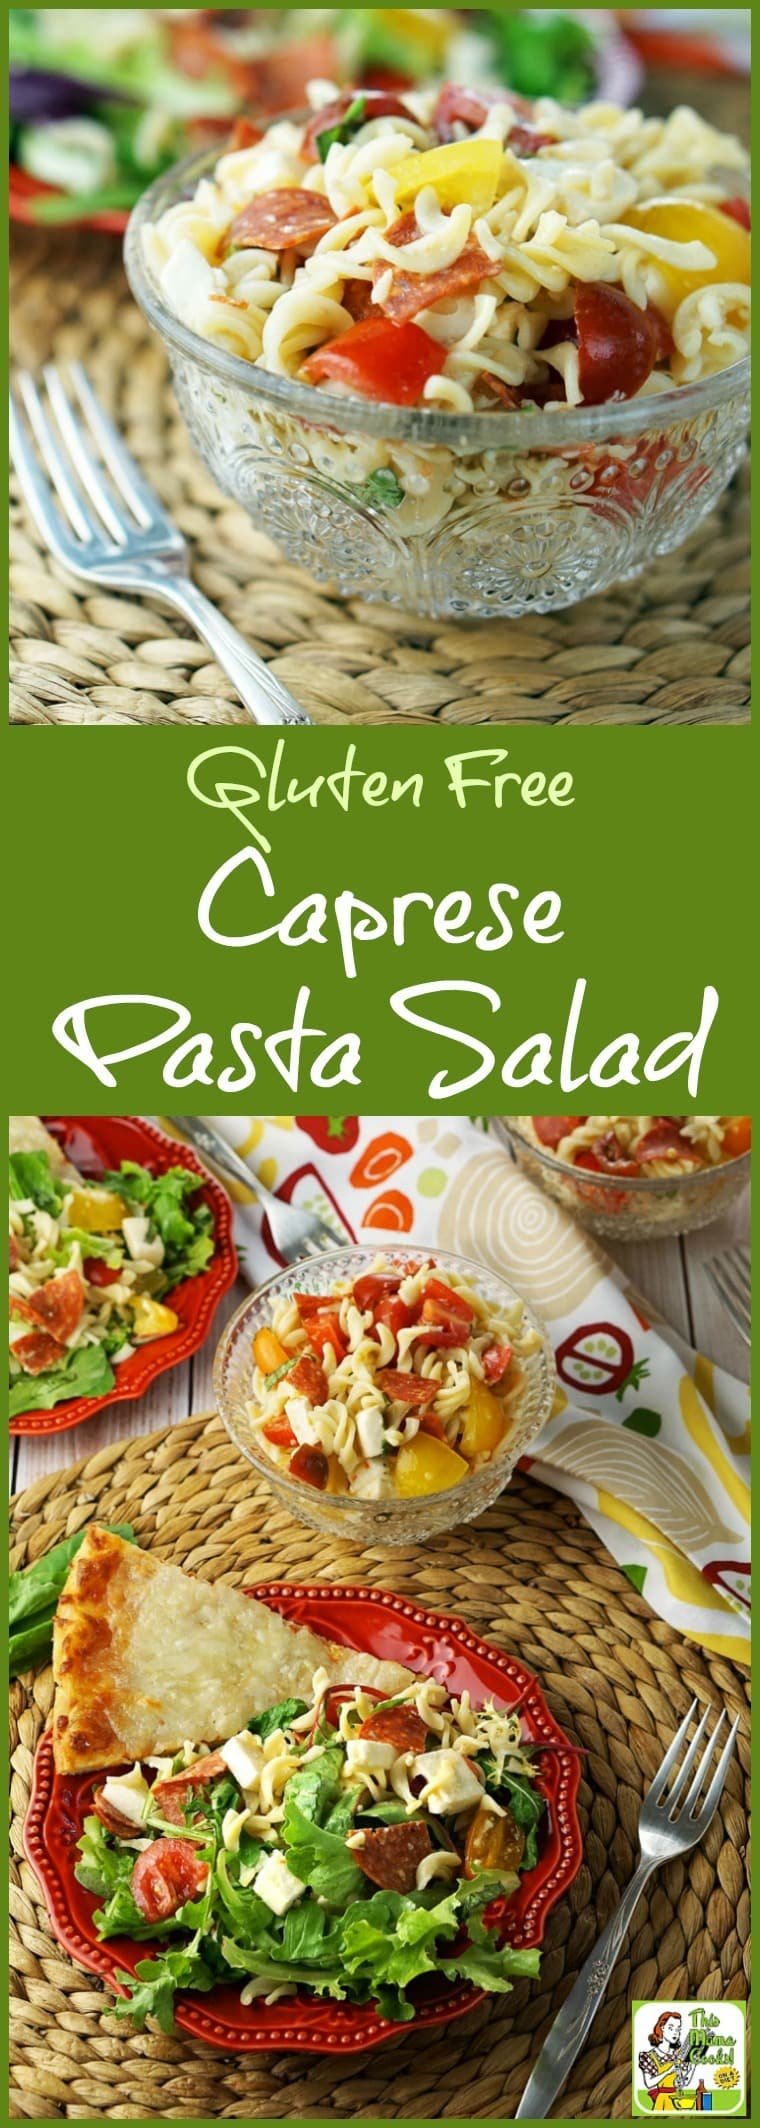 Easy to make Gluten Free Caprese Pasta Salad is ideal for busy weeknight dinner. Serve it with gluten free pizza! Add baby greens lettuce for a more grownup healthy salad recipe. Click here to get the gluten free pasta salad recipe.